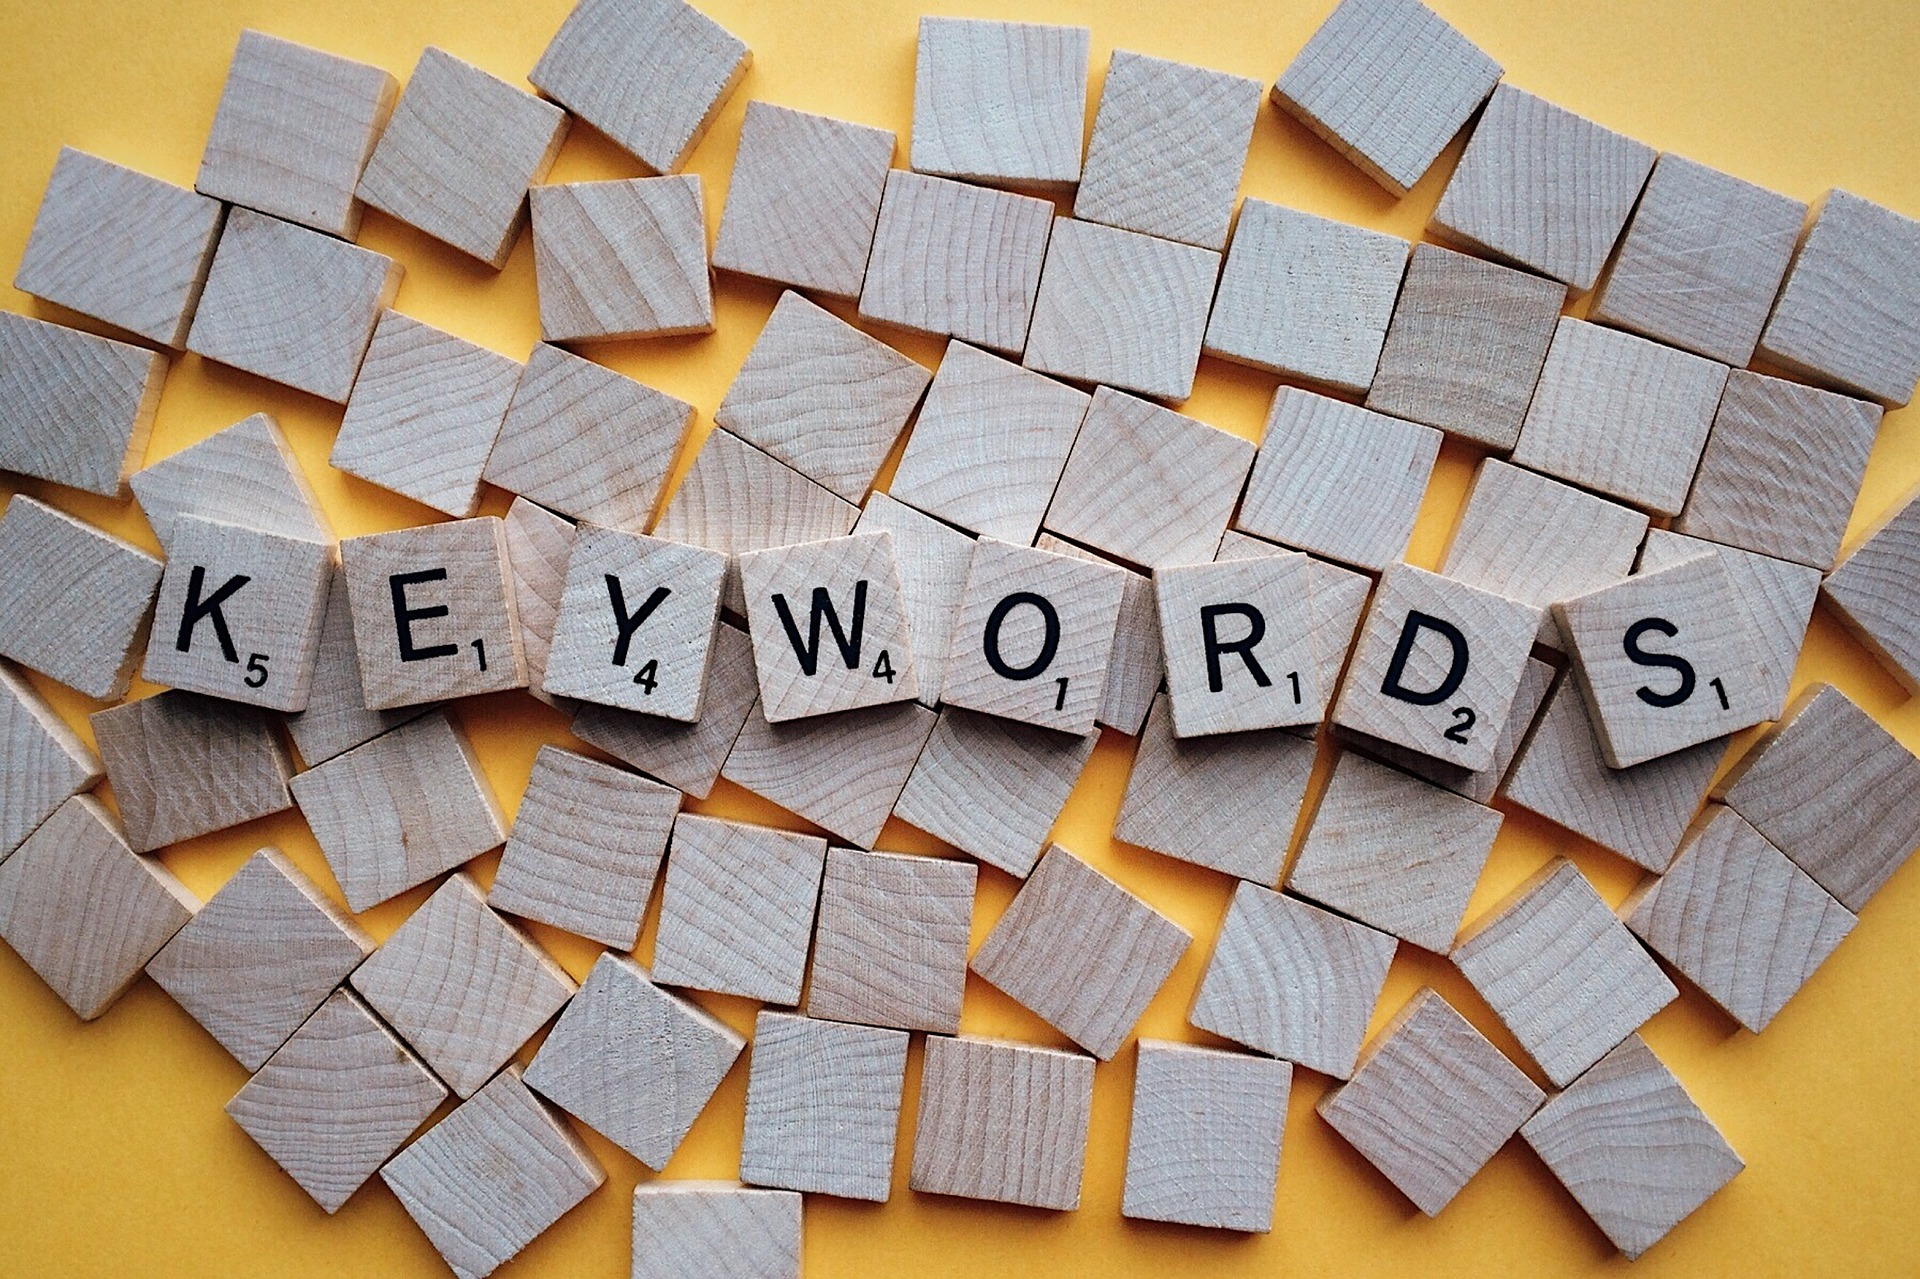 keywords-letters-2041816_1920.jpg